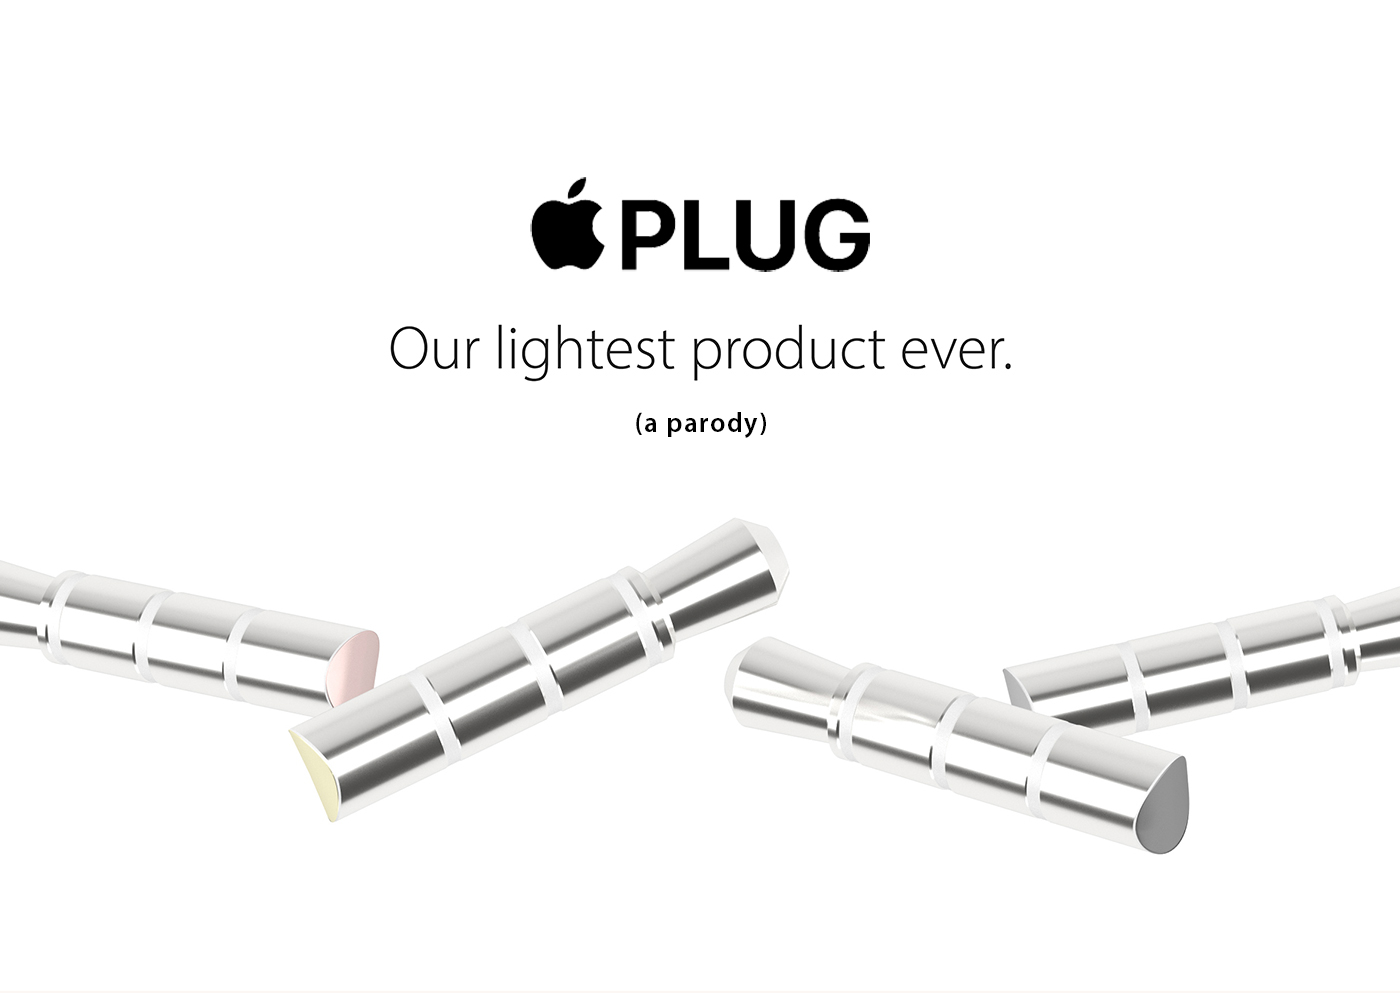 Apple Plug Our Lightest Product Ever On Behance